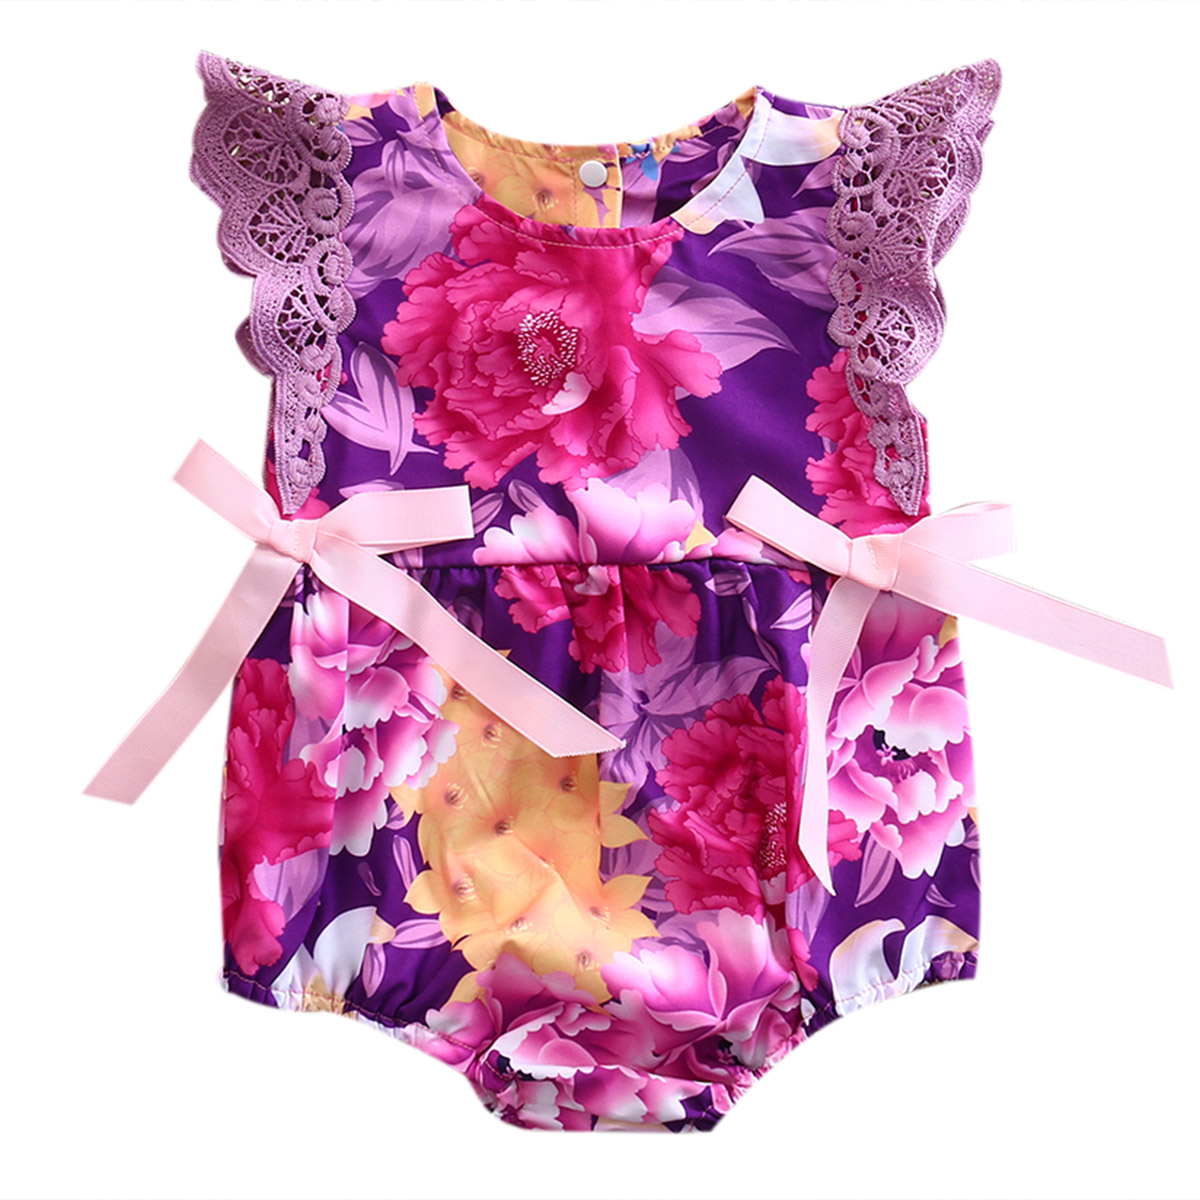 Cute Newborn Baby Girl Lace Floral Romper 2017 Summer Infant Bebes Toddler Kids Jumpsuit Outfits Sunsuit Children Clothes 0-24M newborn infant baby clothes girl lace strap floral romper jumpsuit headband 2pcs summer baby girl romper clothes baby onesie